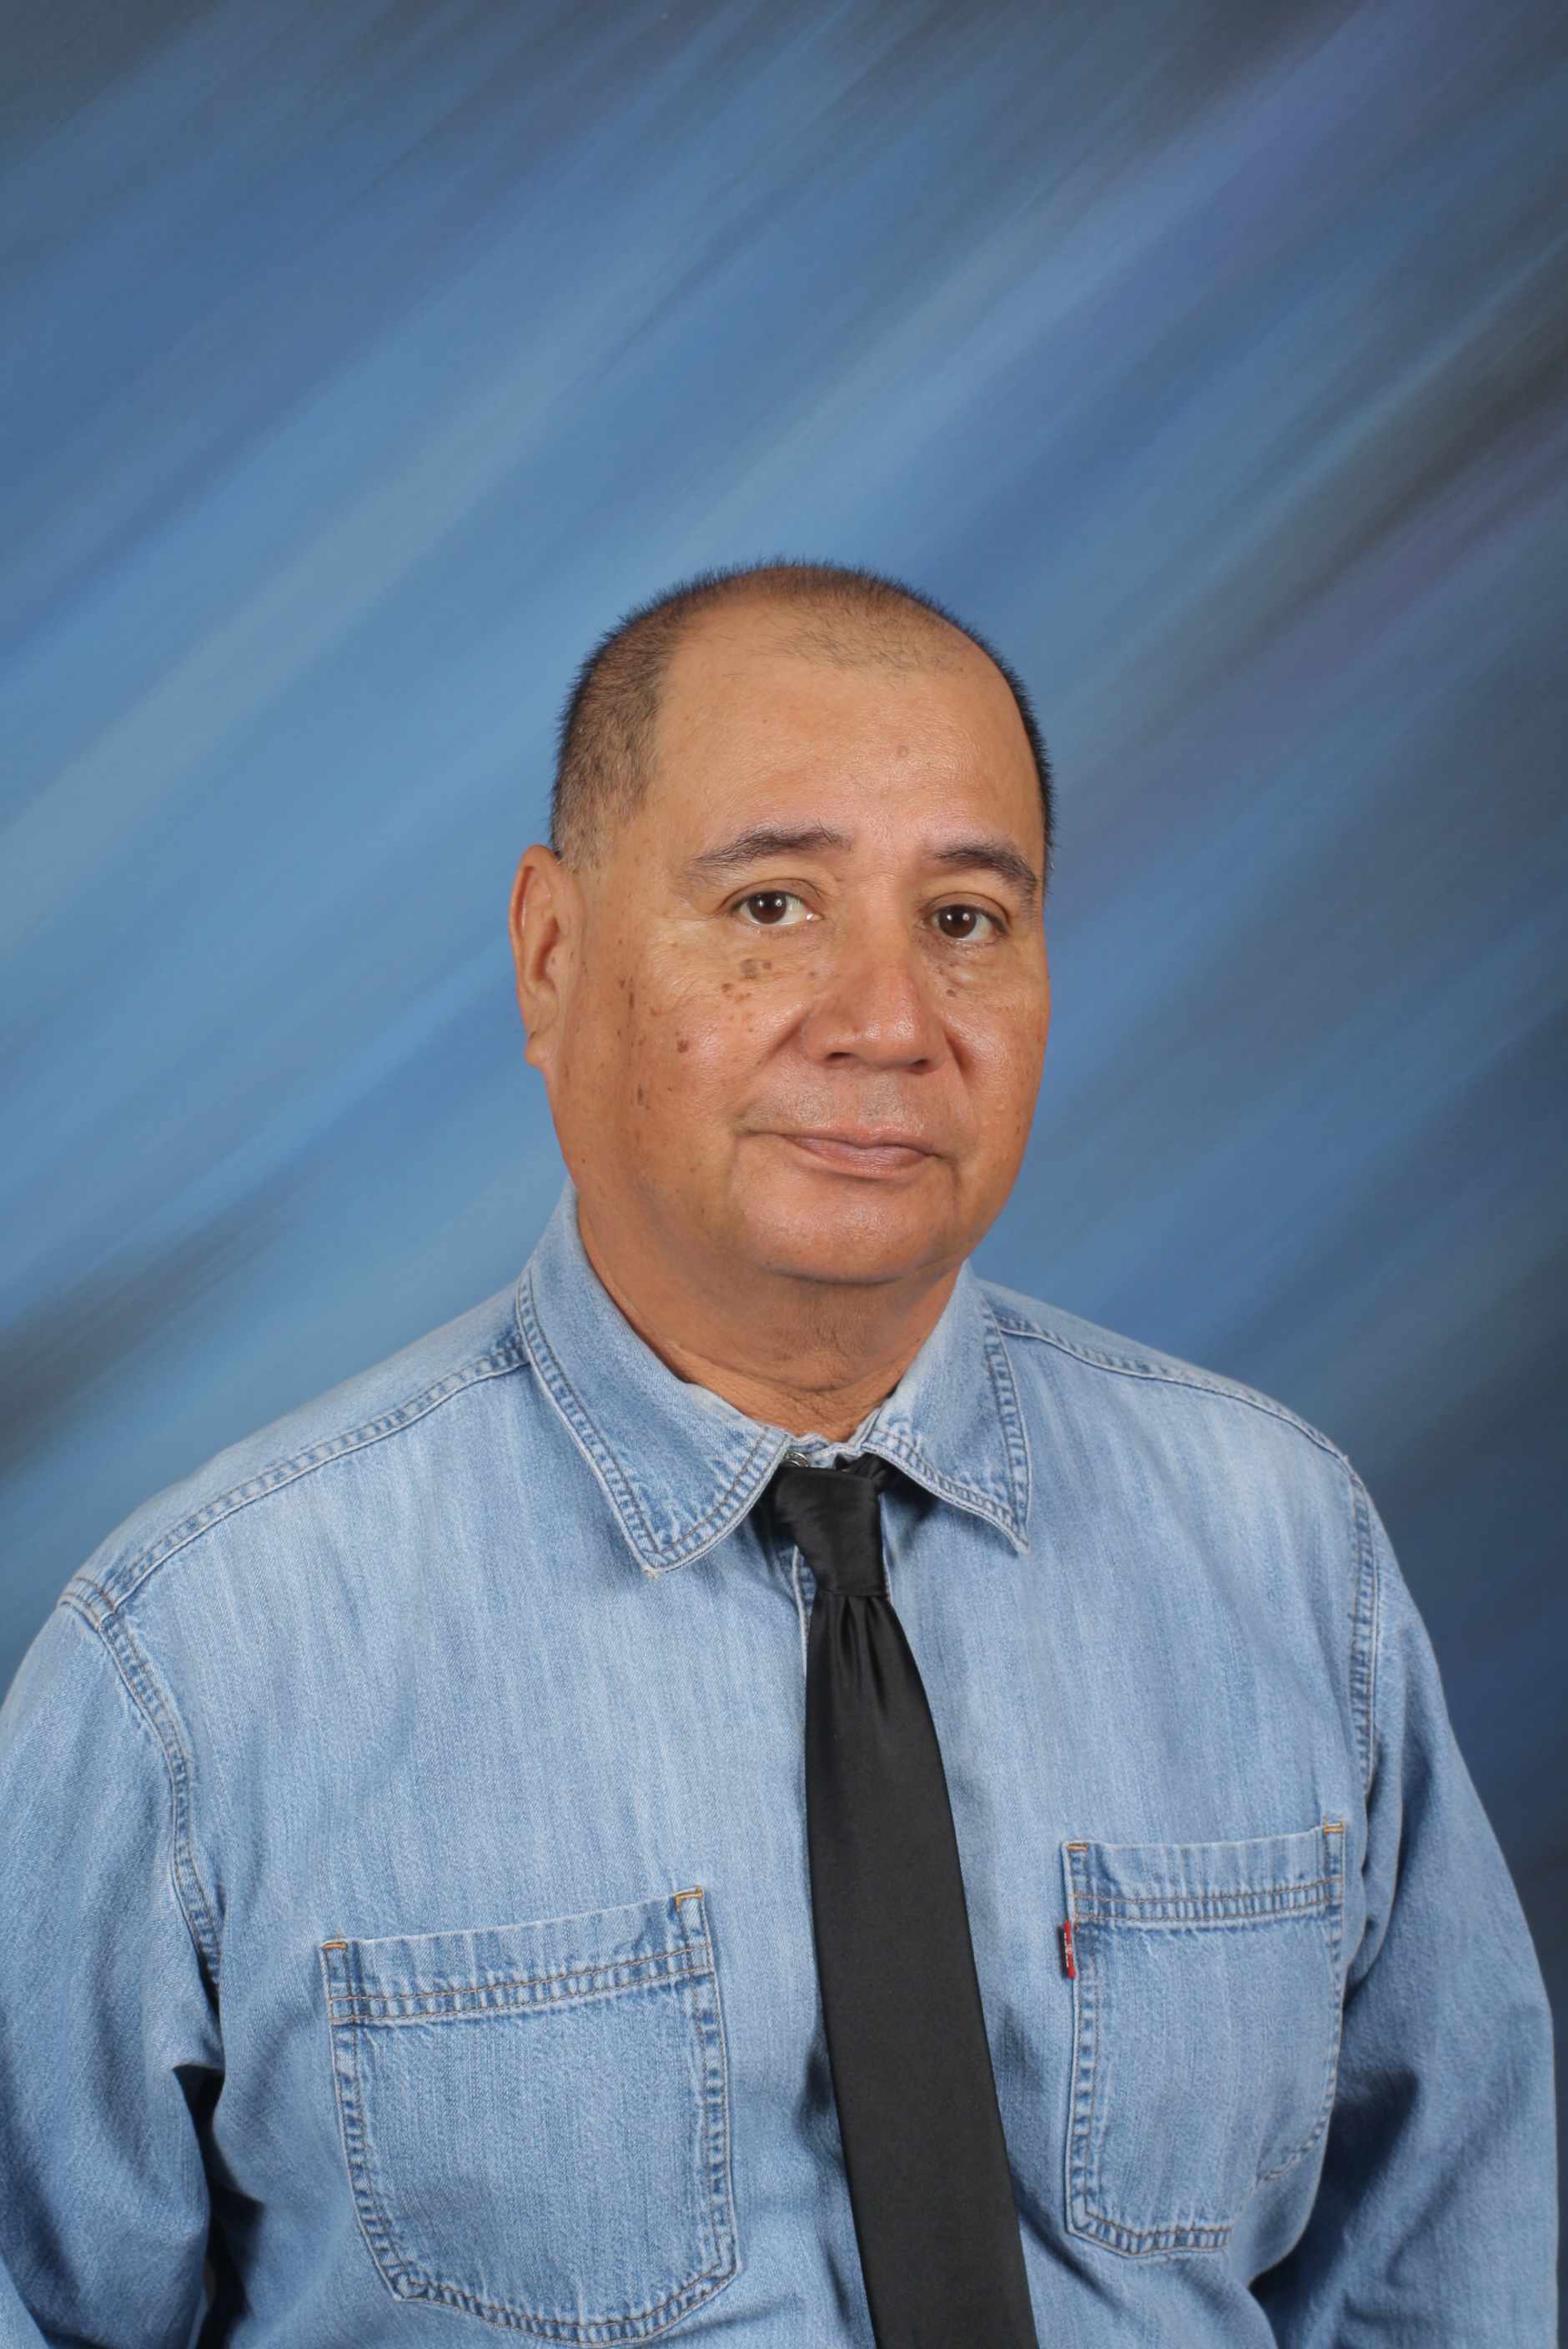 Mr. Vargas (Montessori Teacher)